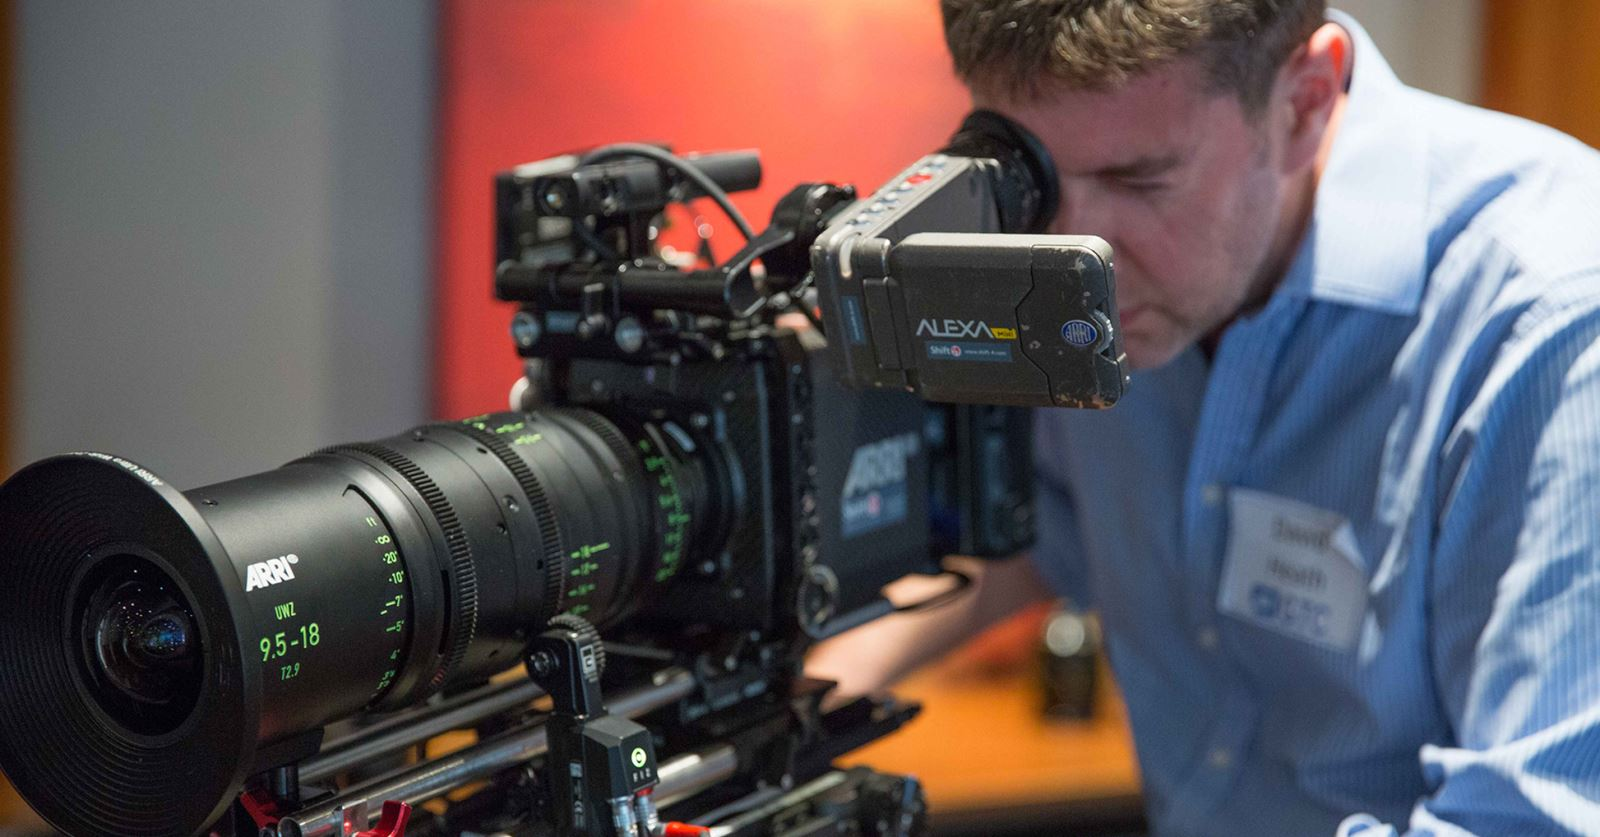 Trying out an ARRI Alexa and lens at the recent 'Getting to Grips with Lenses' GTC workshop